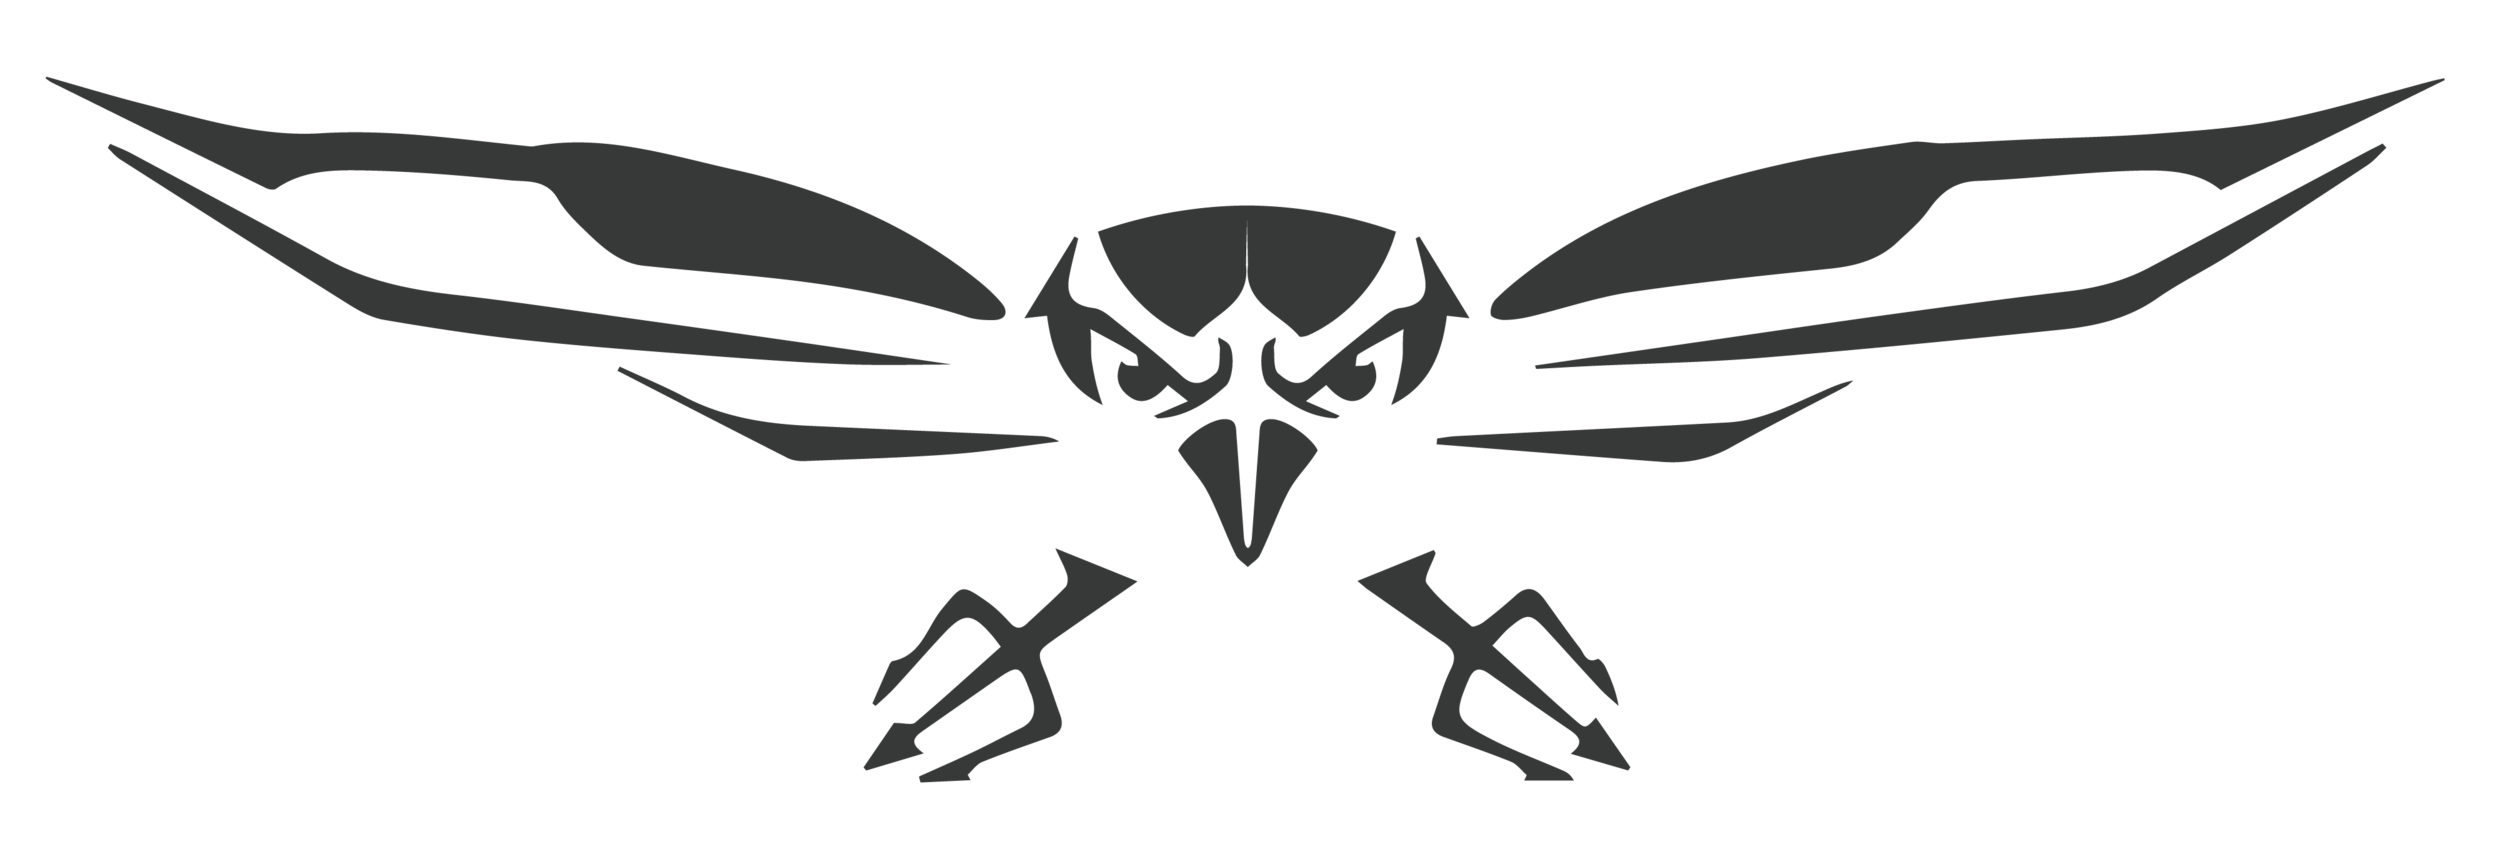 seahawk_trident_4000px_wide.png